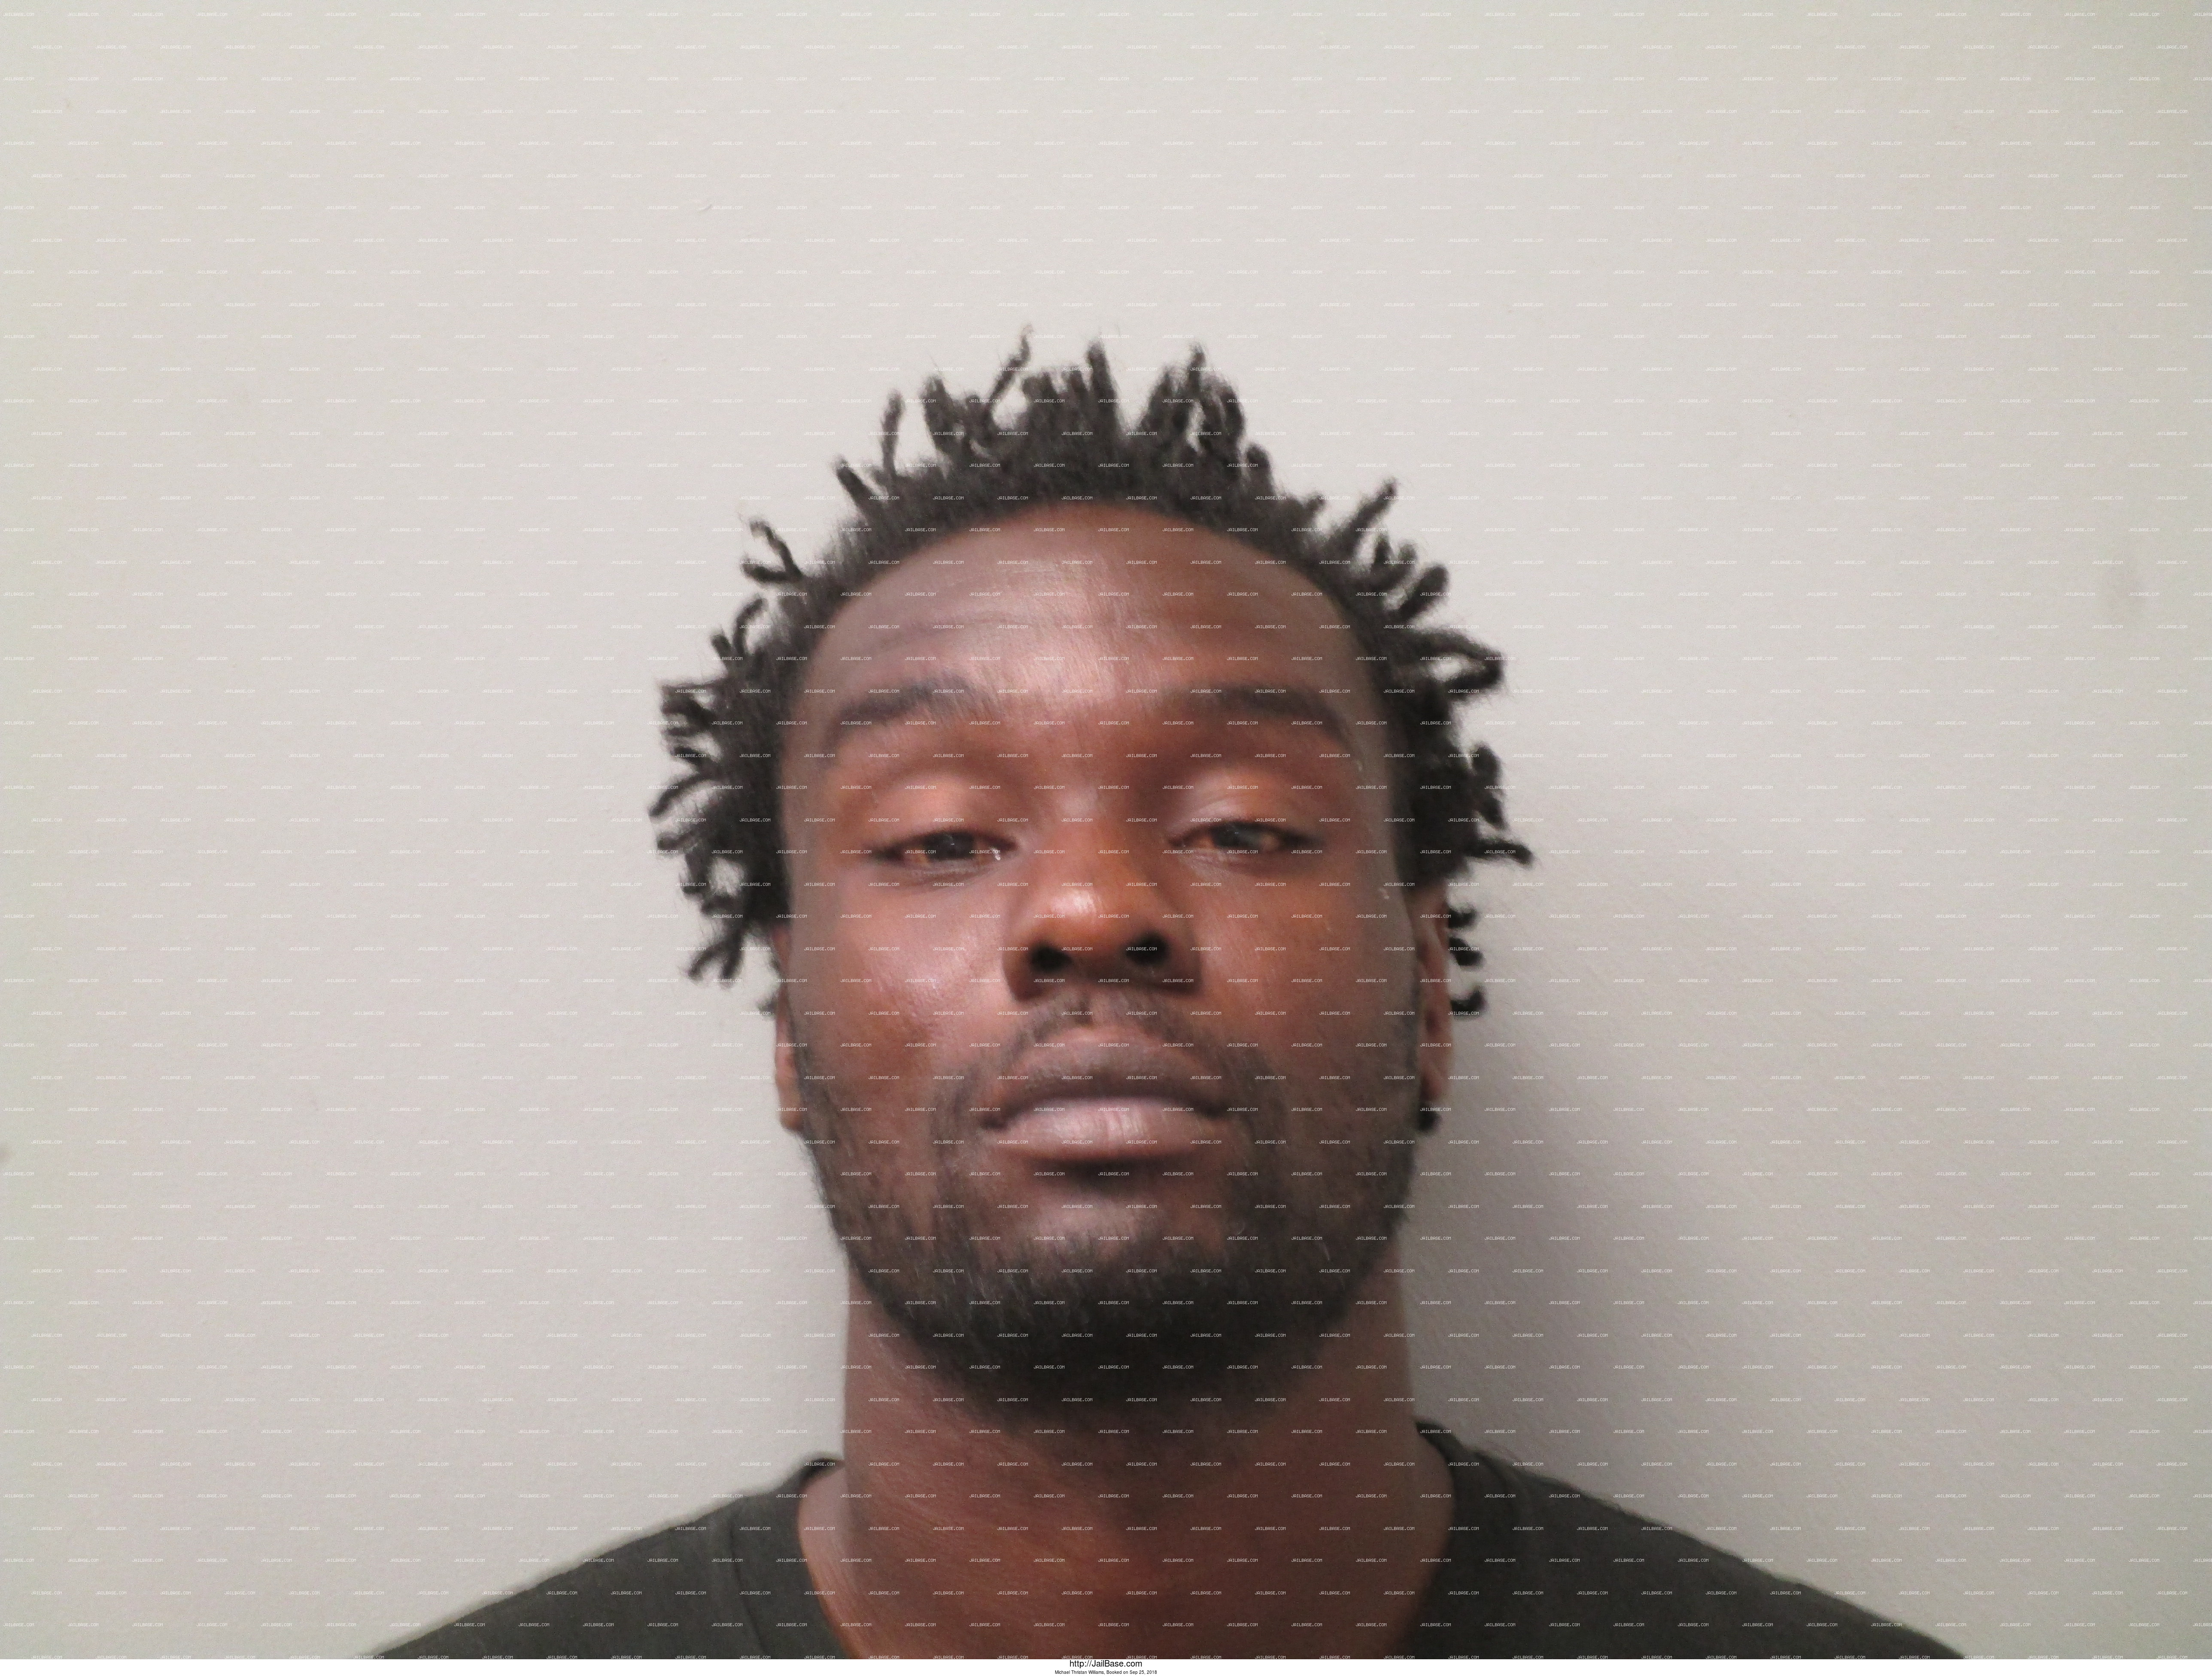 MICHAEL THRISTAN WILLIAMS mugshot picture